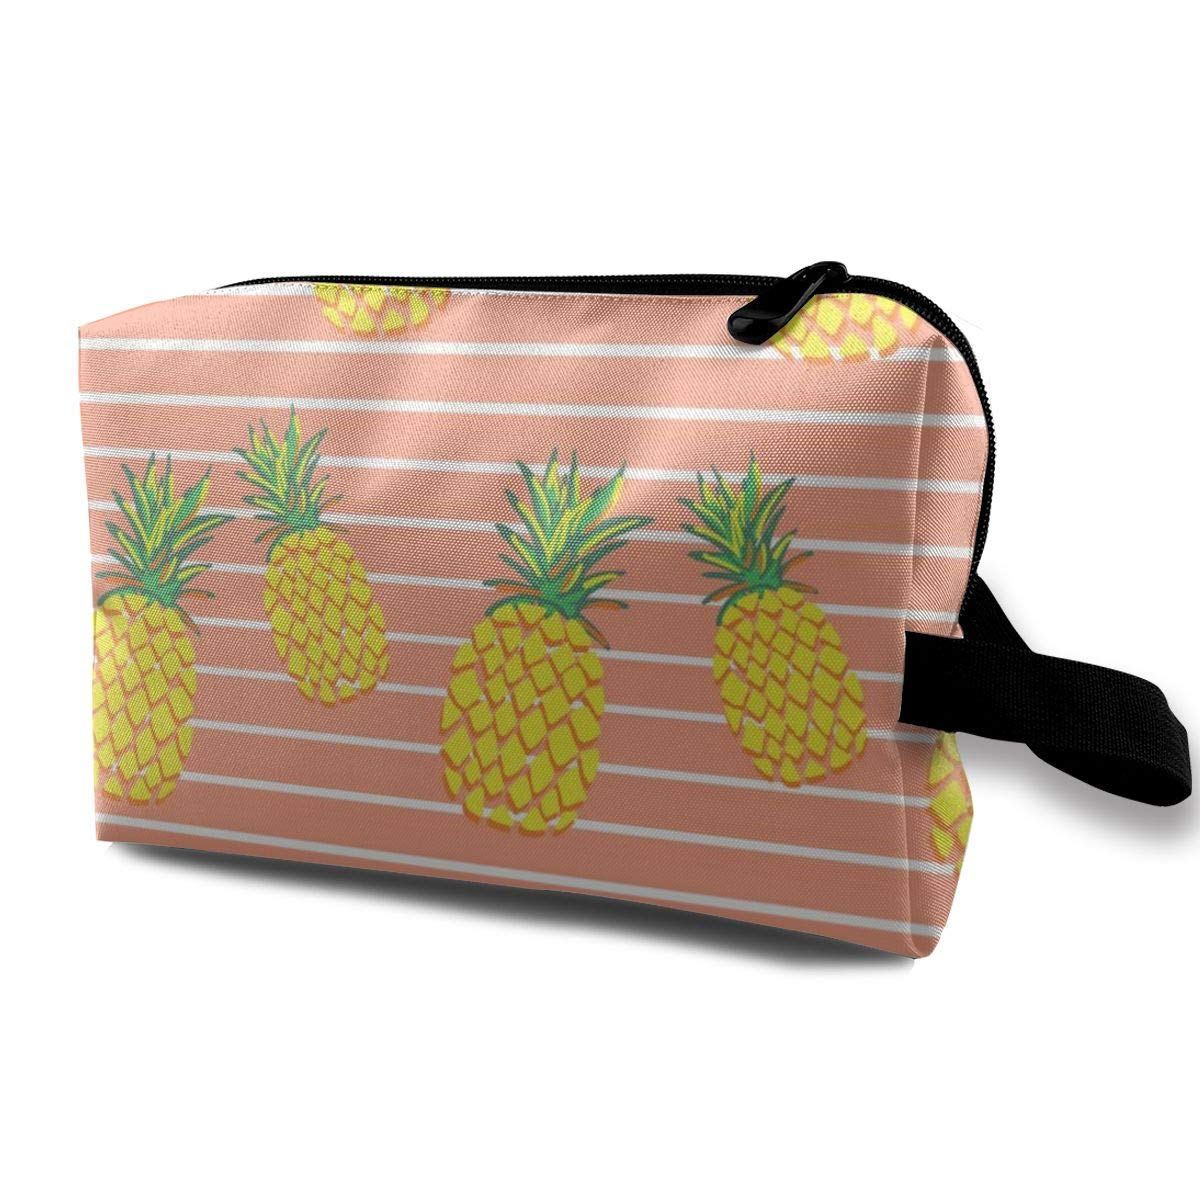 Pineapples Orange Stripes Makeup Bag Pouch Purse Cosmetic Organizer for Women,Portable Waterproof and High Capacity,for Lipstick Eyeshadow Hairbrushes